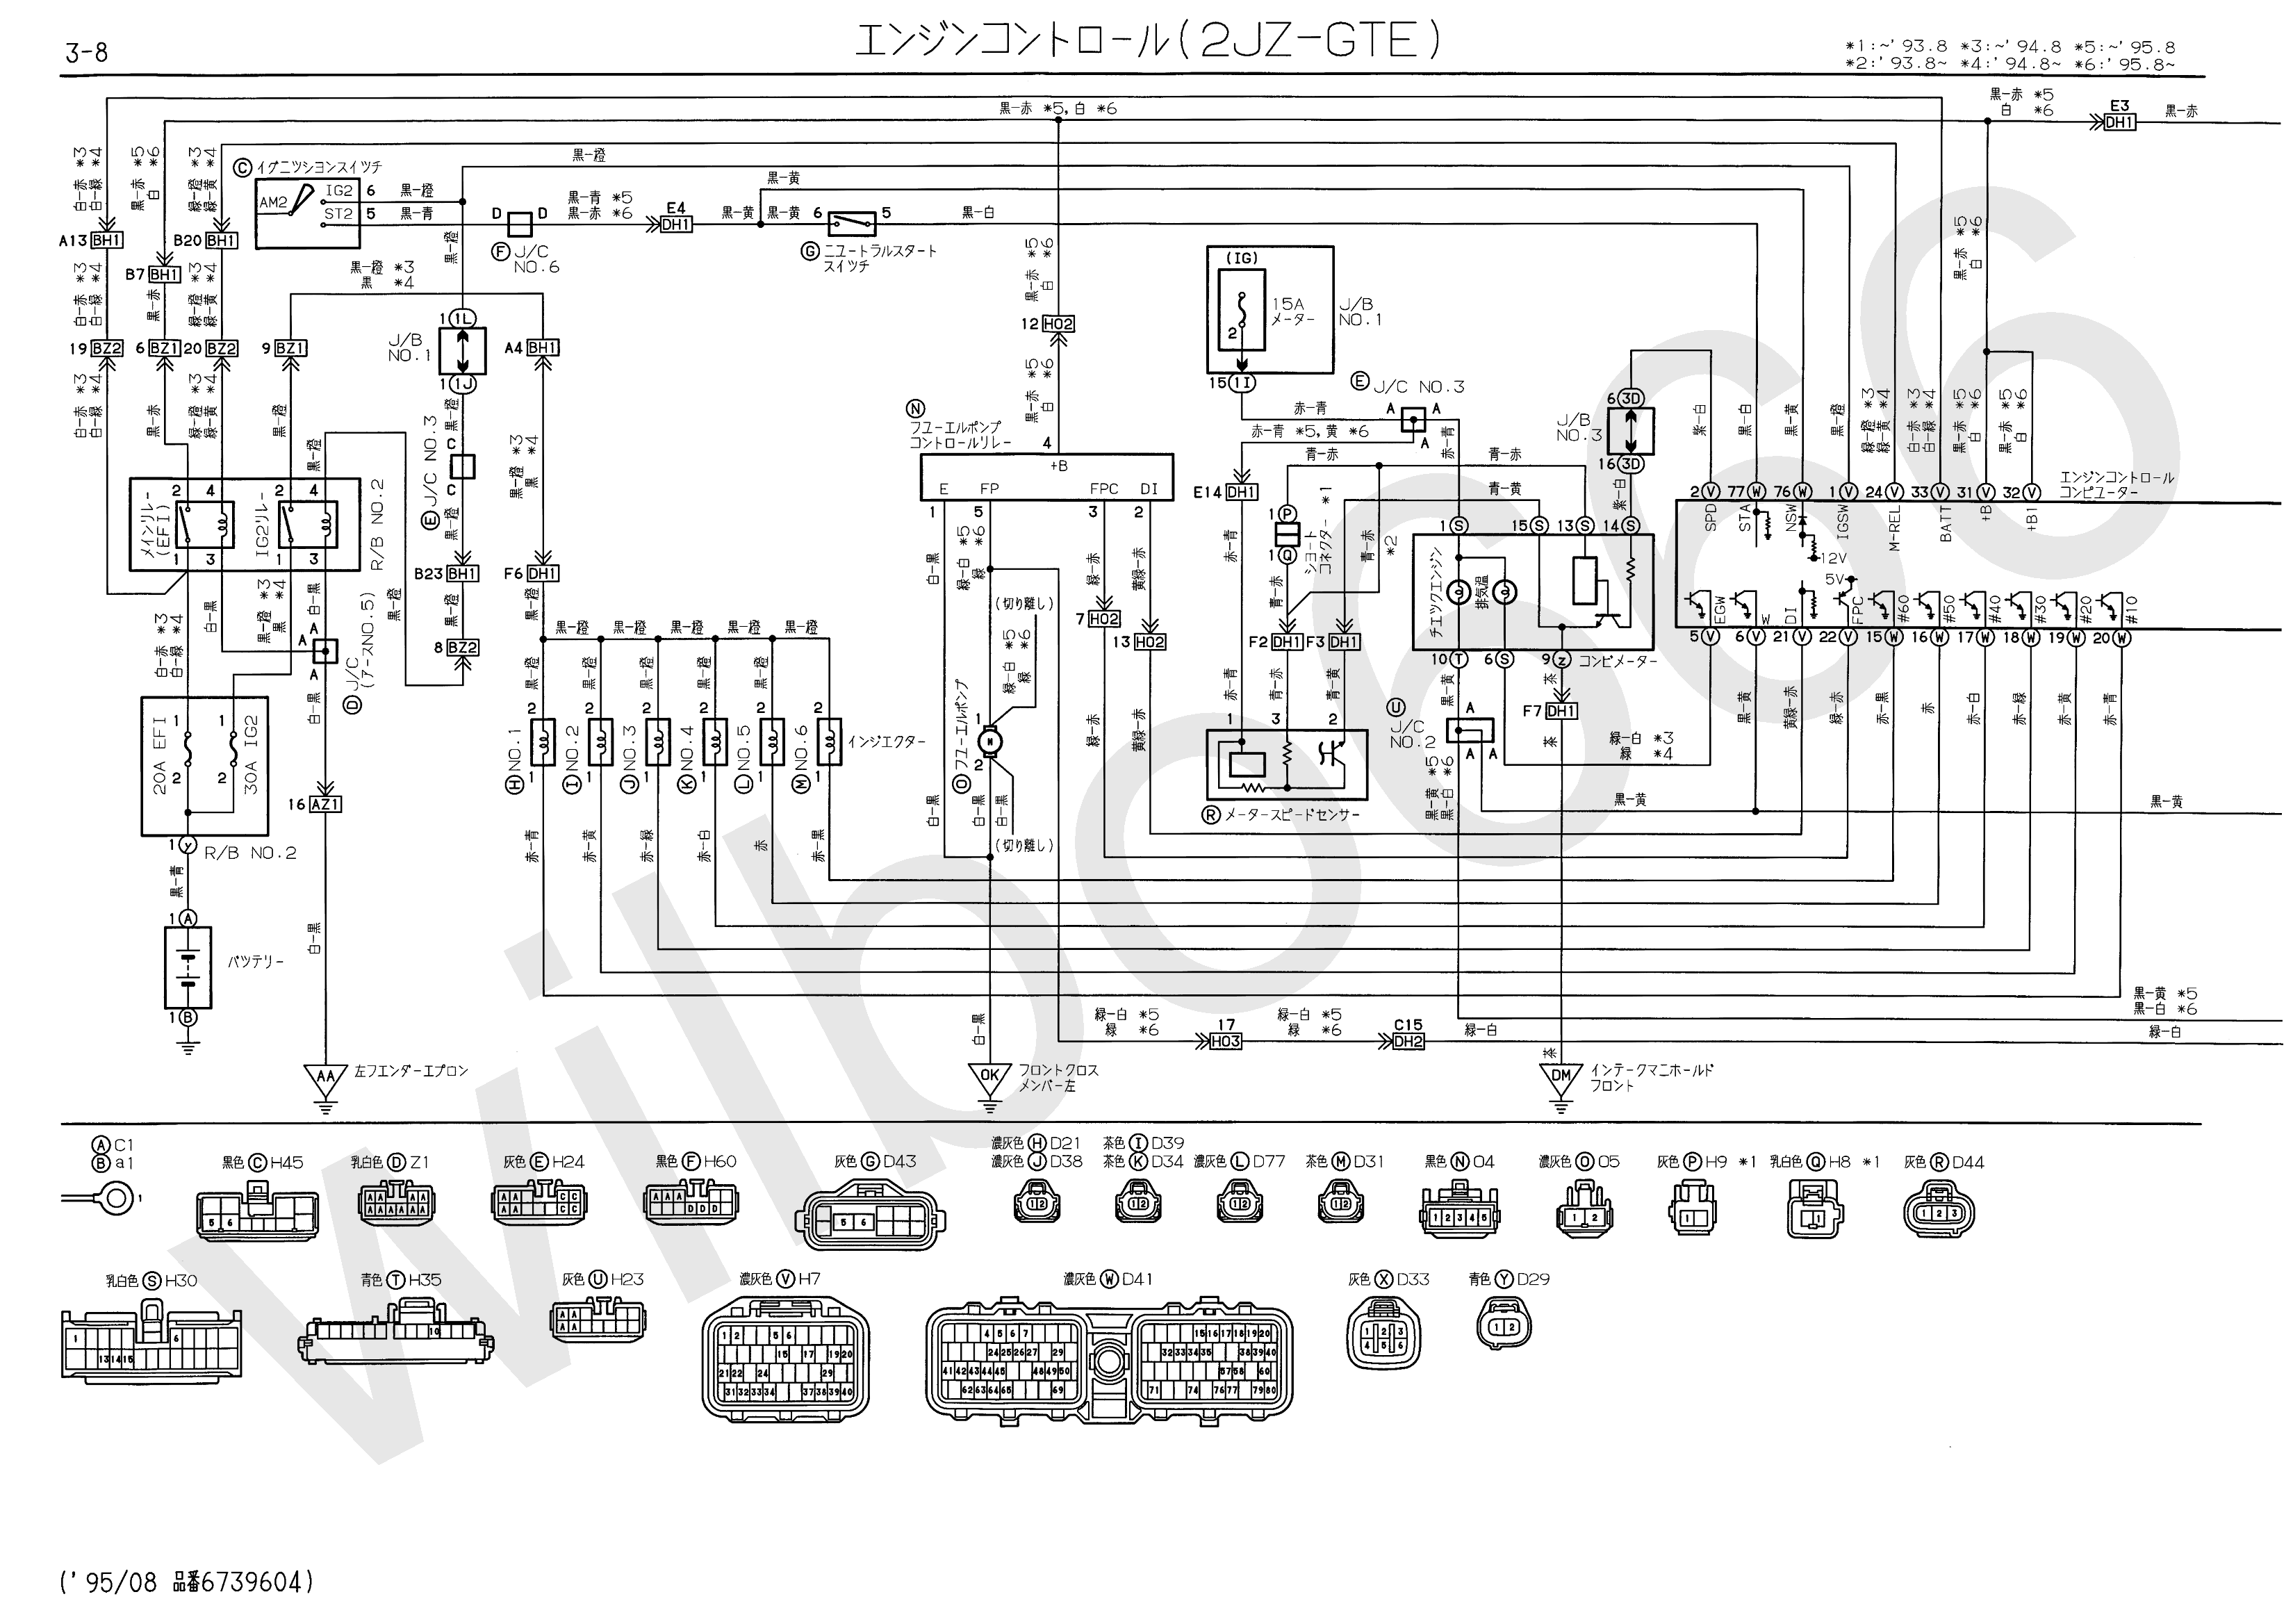 JZS14%23%2C+UZS14%23+Electrical+Wiring+Diagram+6739604+3 8 wilbo666 2jz gte jzs147 aristo engine wiring 2jz ge wiring diagram pdf at edmiracle.co